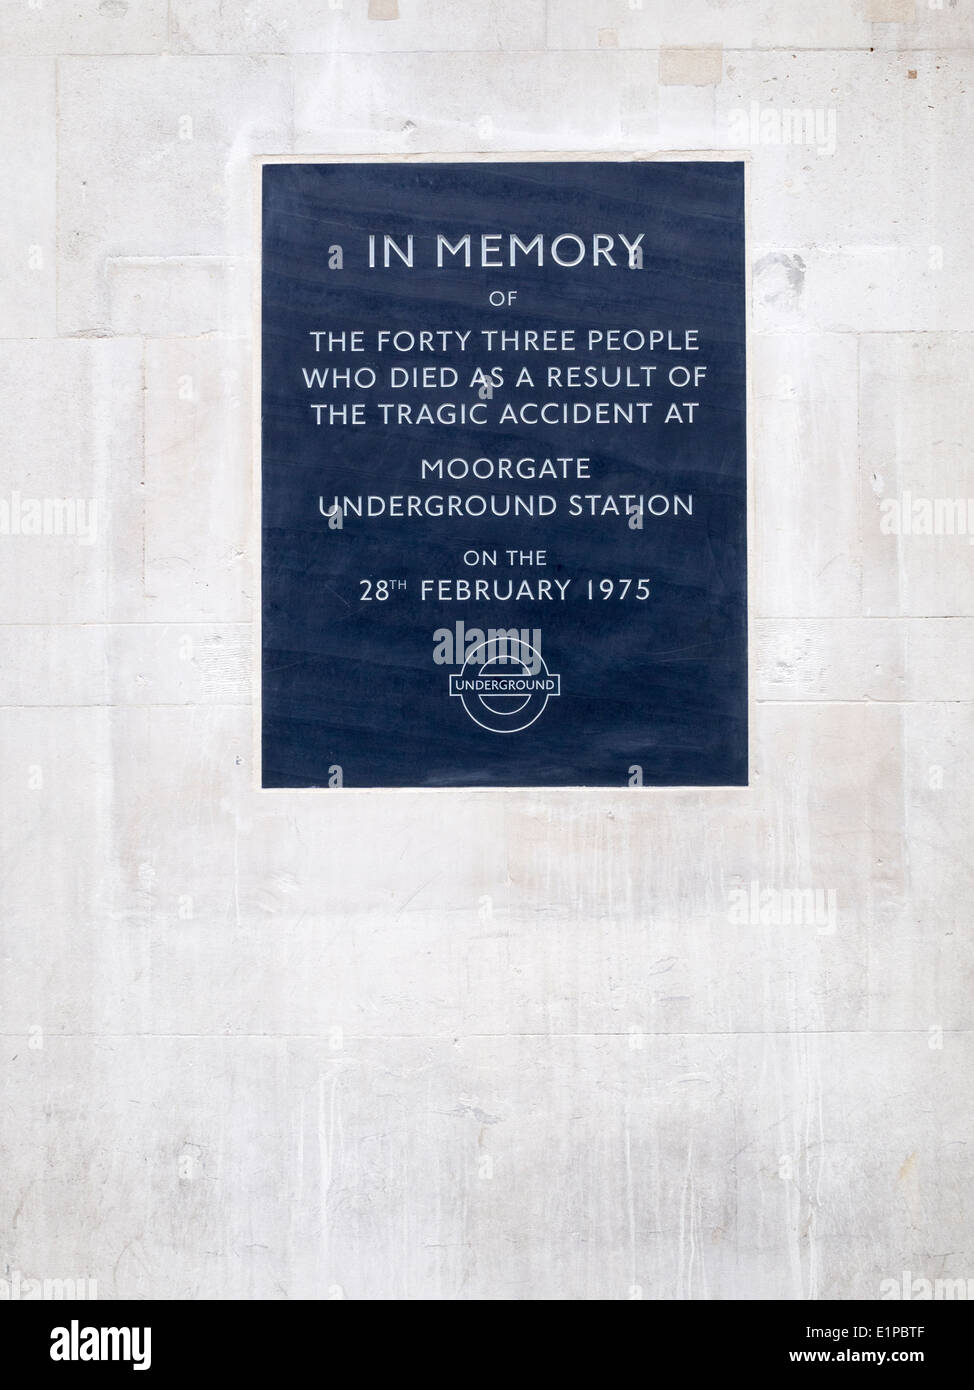 Memorial to the Moorgate trash crash at Moorgate Station London in 1975 - Stock Image